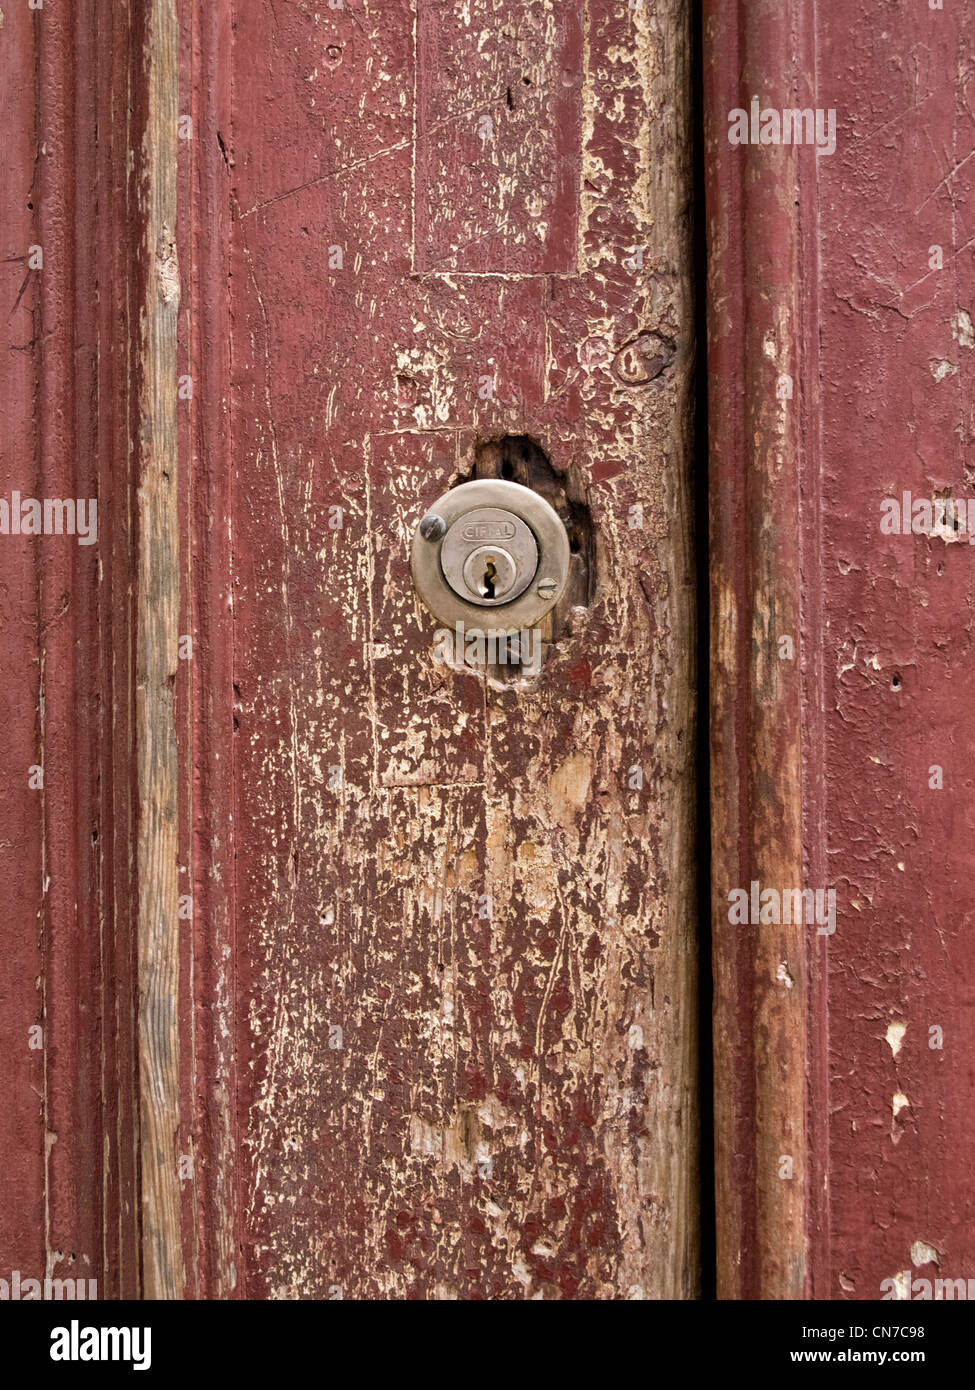 Modern keyhole on an old decaying wooden door - Stock Image